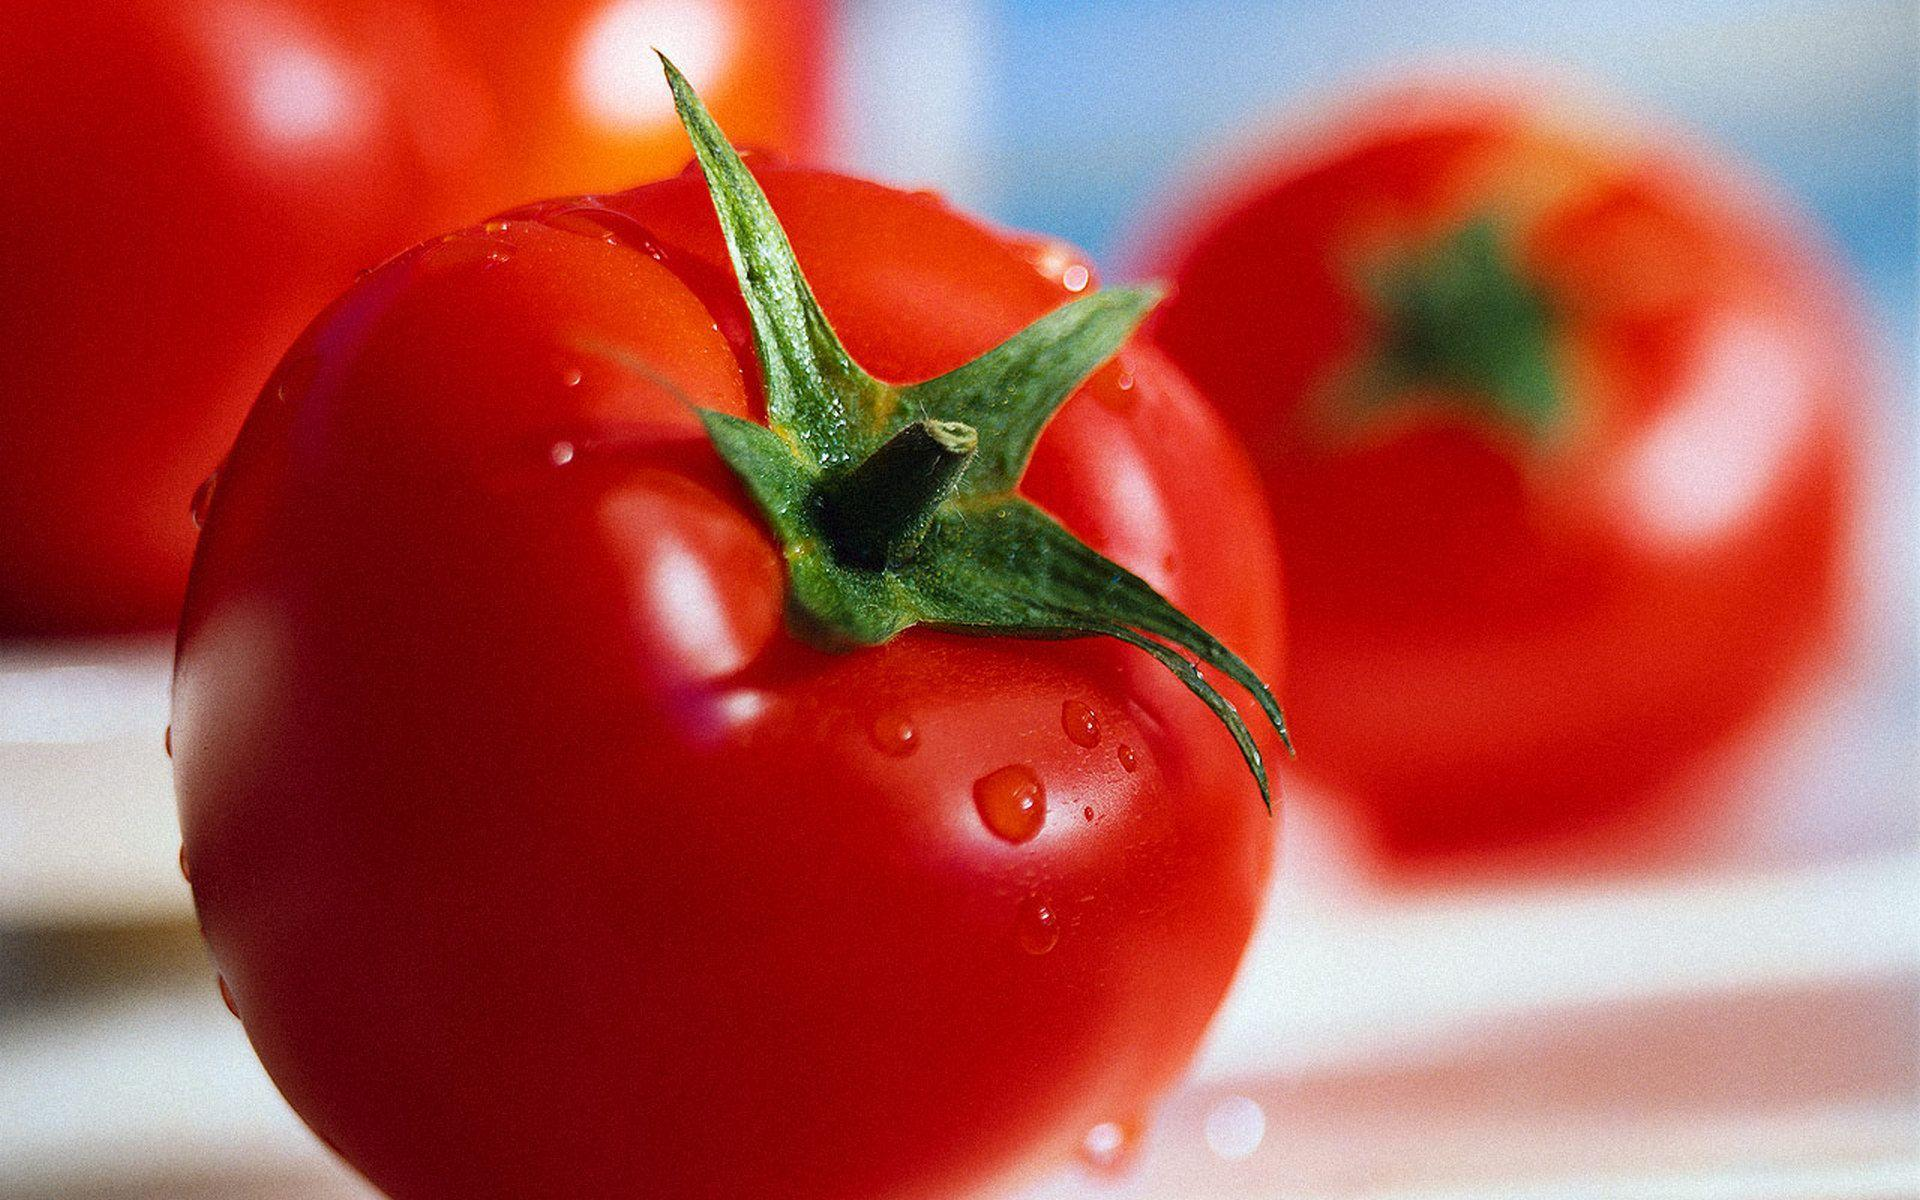 Tomato Wallpapers, Pictures, Image